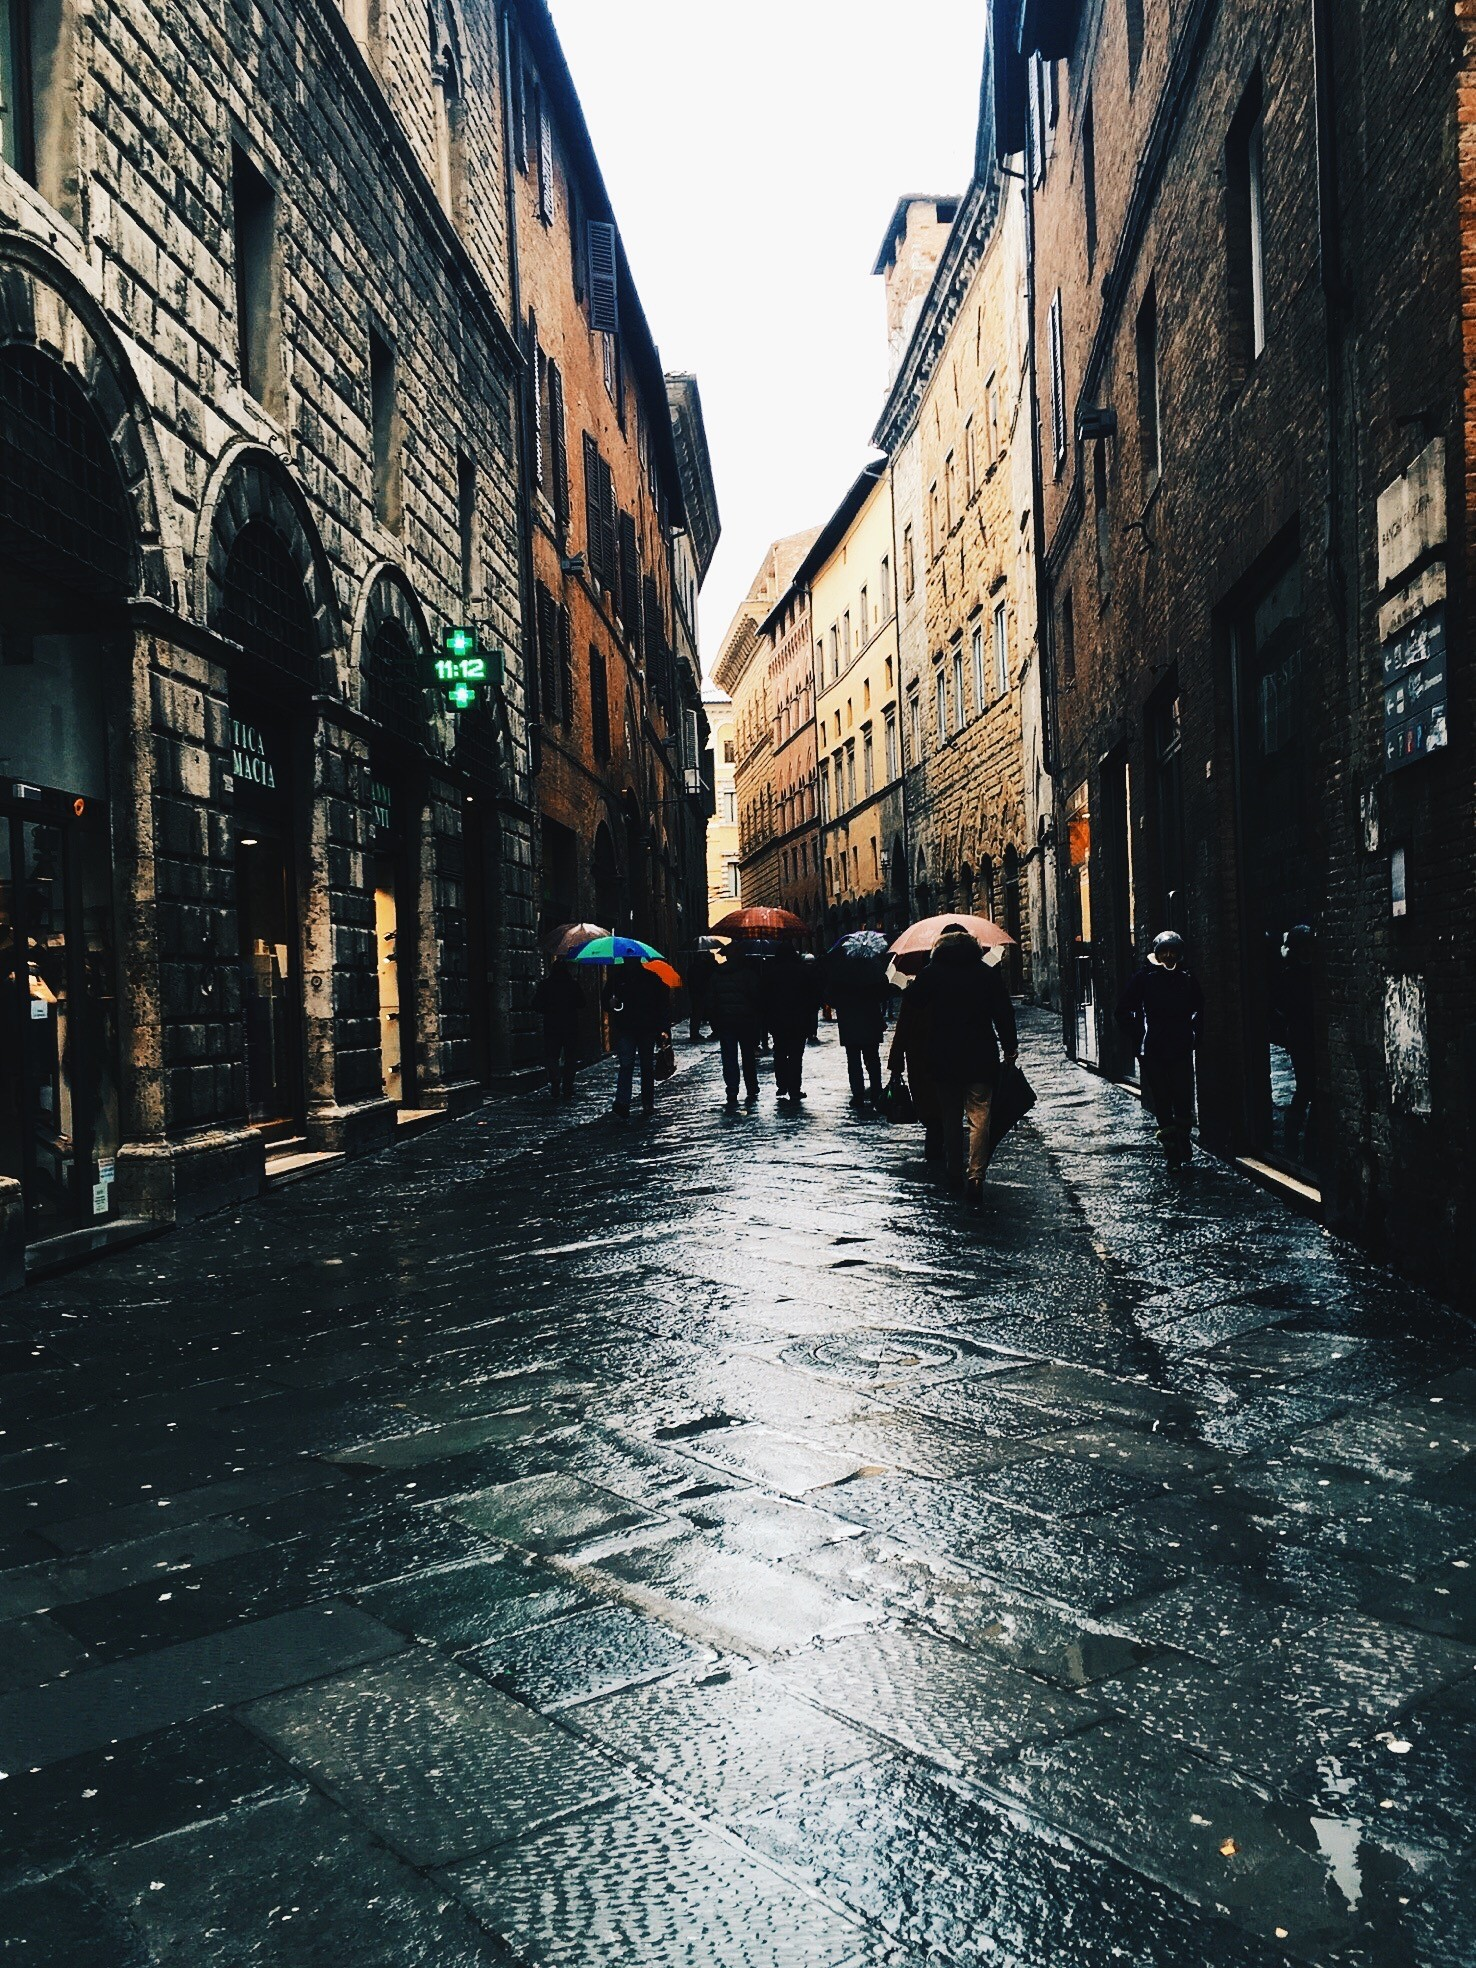 CAPAStudyAbroad_Florence_From Emily Kearns - Day Trips - Siena, San Gimignano2.jpg